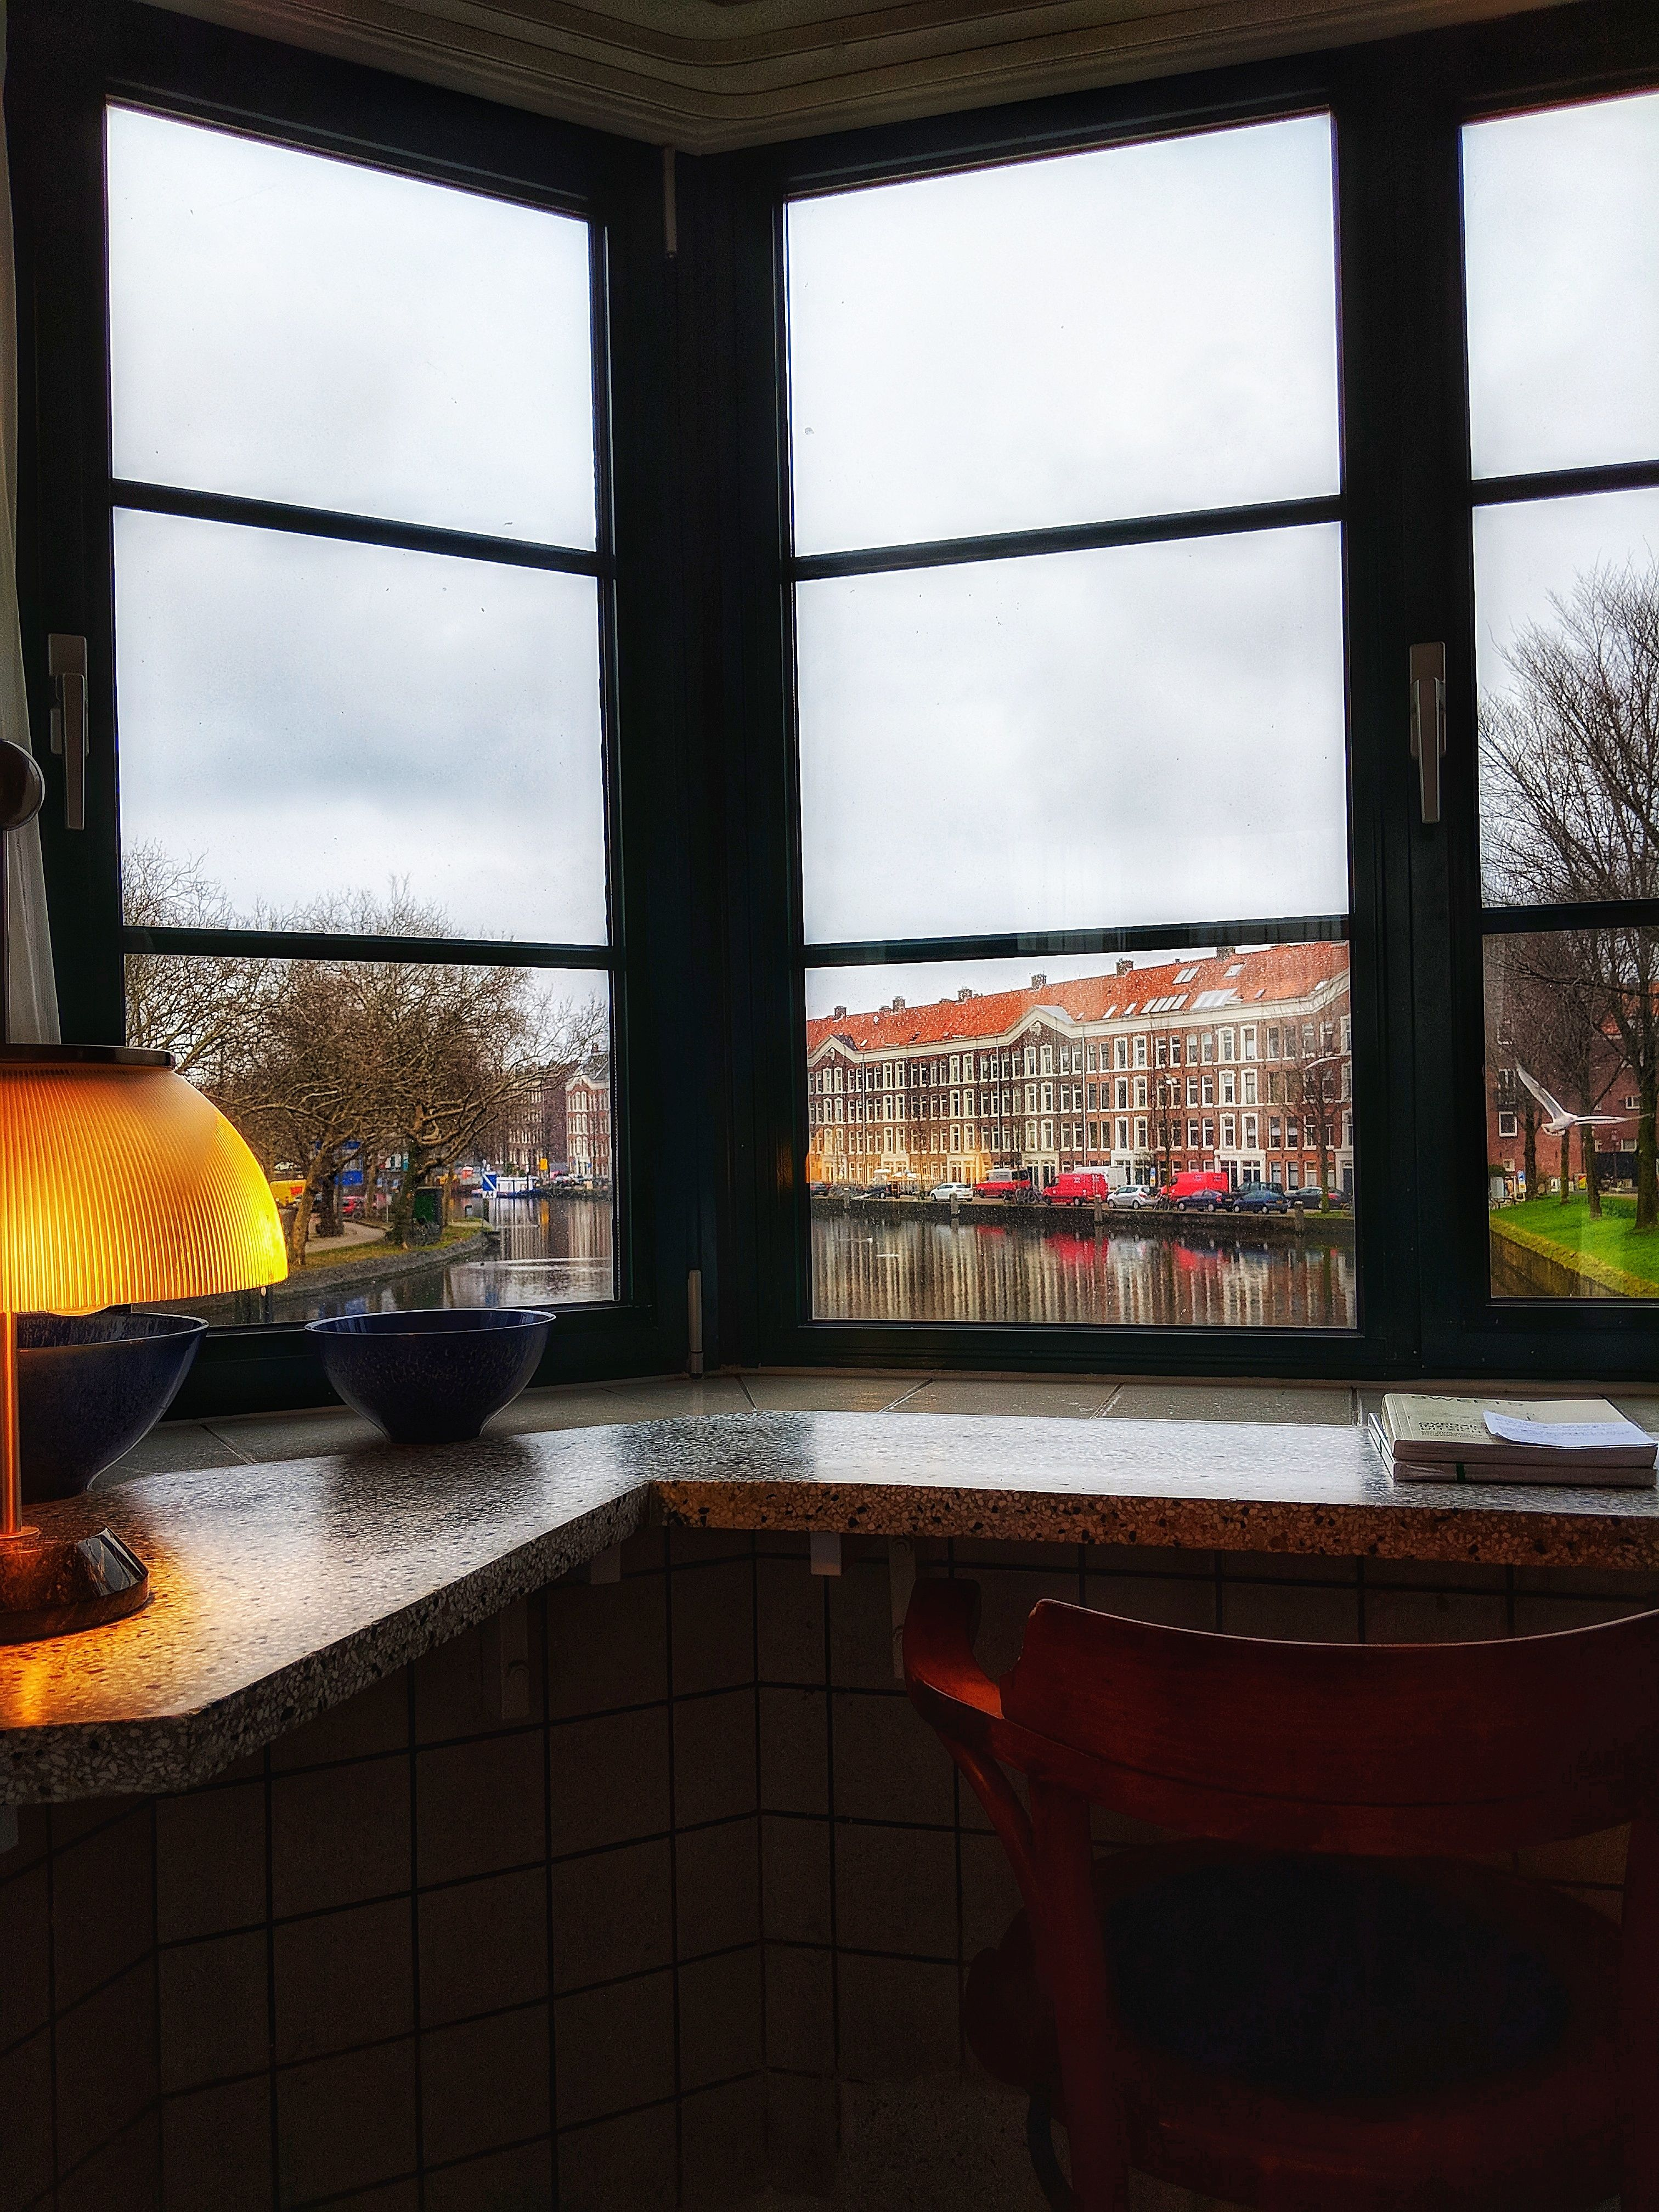 Emma Walton from www.instagram.com/supperinthesuburbs stayed at bridge house 304 - Kattenslootbrug and woke up with this view from the bed.    _______ #sweetshotel #amsterdam #kattenslootbrug #amsterdamwest #oudwest #nassaukade #view #hotelroom #hotel #hotels #bucketlist #viewfrommyroom #viewfrommyhotelroom #roomwithaview #viewfrommybed #jordaan #riverview #amsterdamcanals #canal #staycation #uniquestay #uniquehotel #unusual